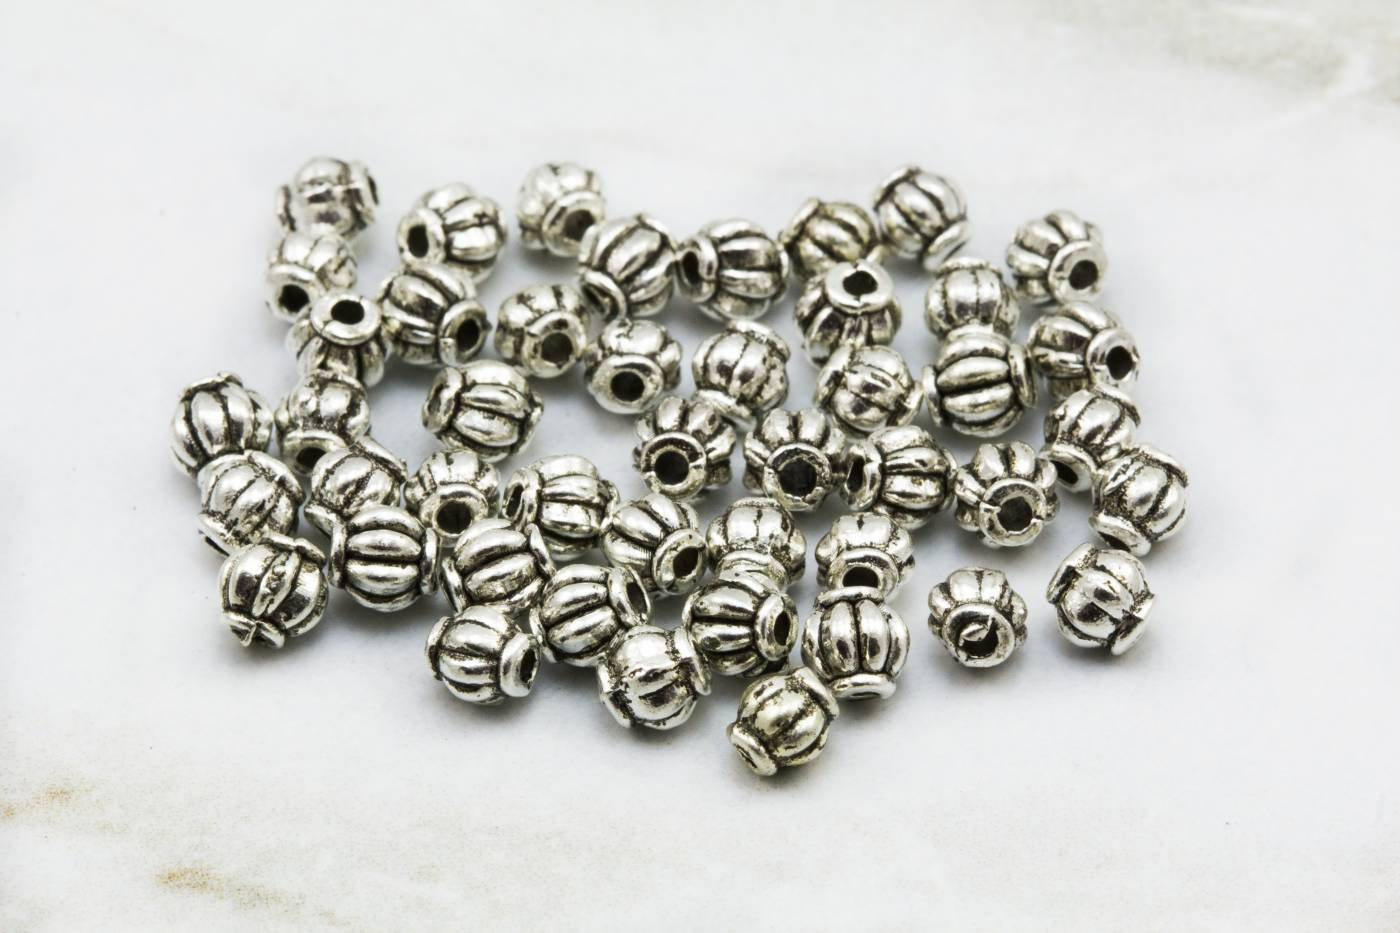 4mm-round-ball-jewelry-spacer-beads.jpg